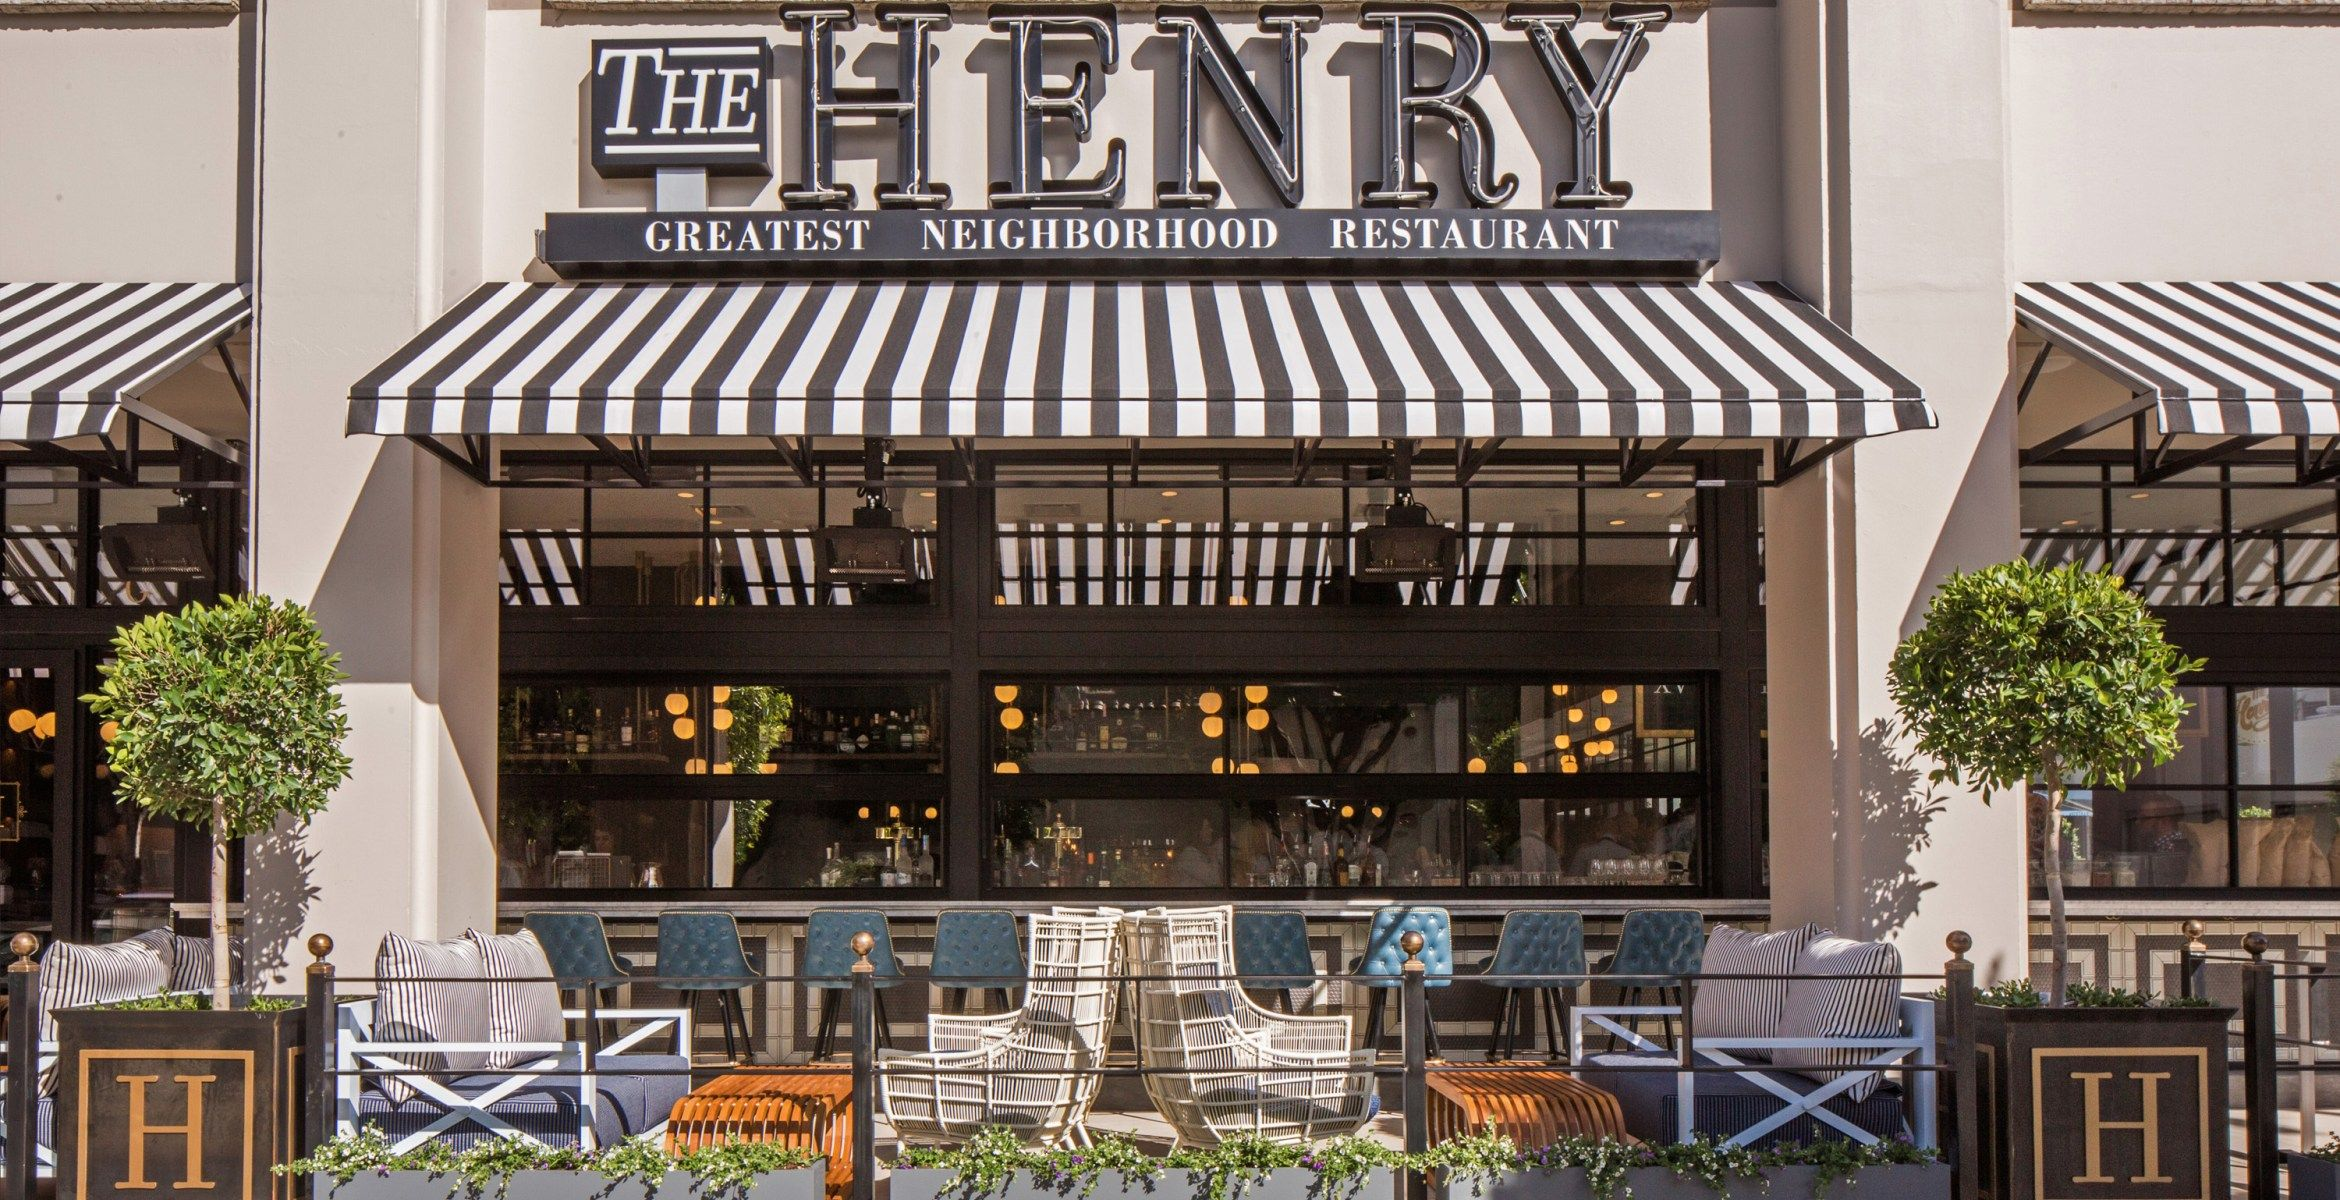 Fashionable Resto The Henry Joins Robertson Plaza S Stylish And Bike Friendly Makeover Uncover Los Angel Restaurant Concept Los Angeles Restaurants La Trip